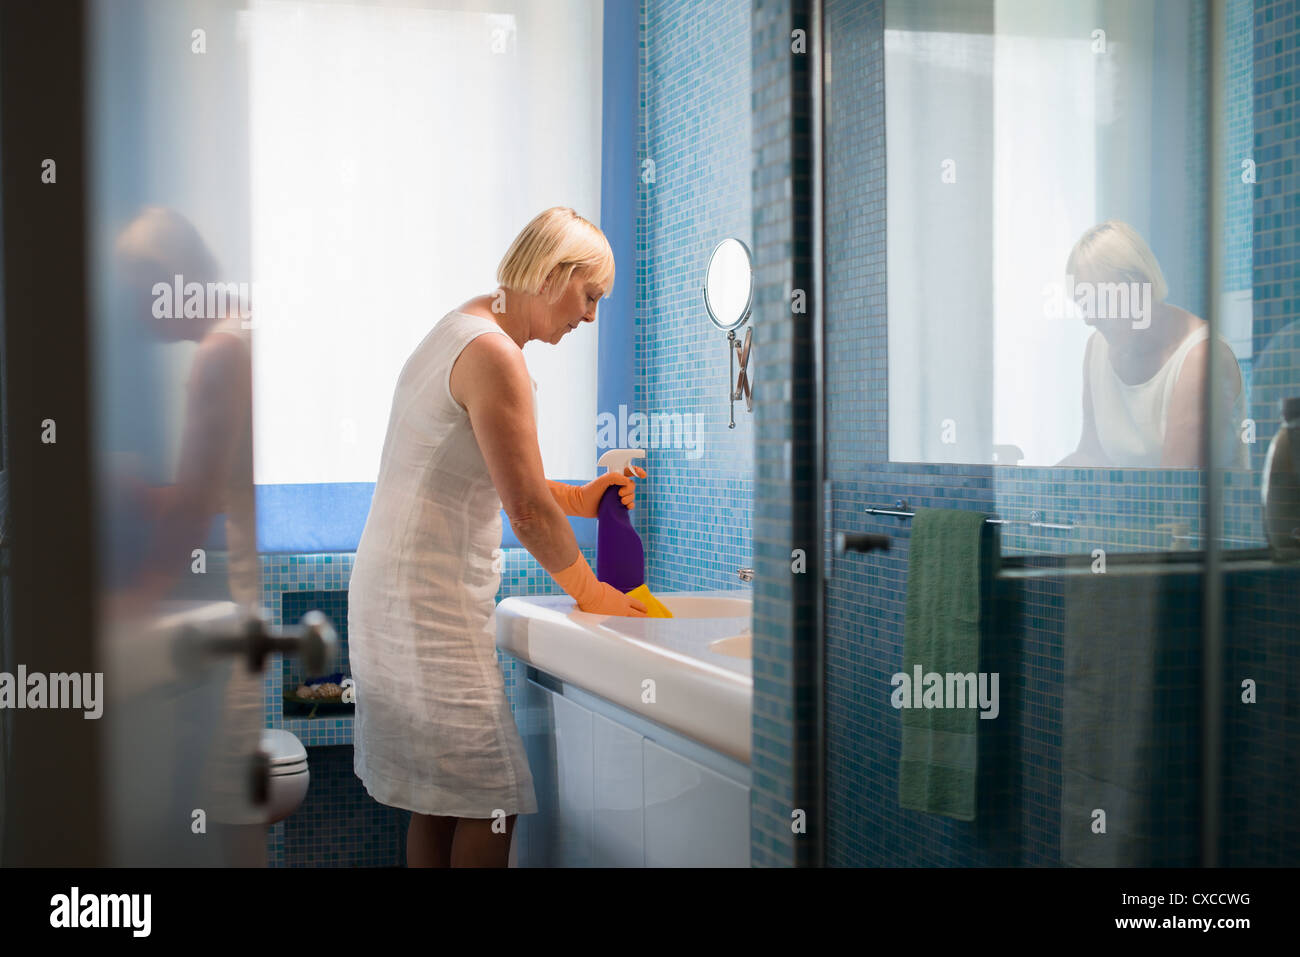 mature woman cleaning bathroom with spray detergent - Stock Image